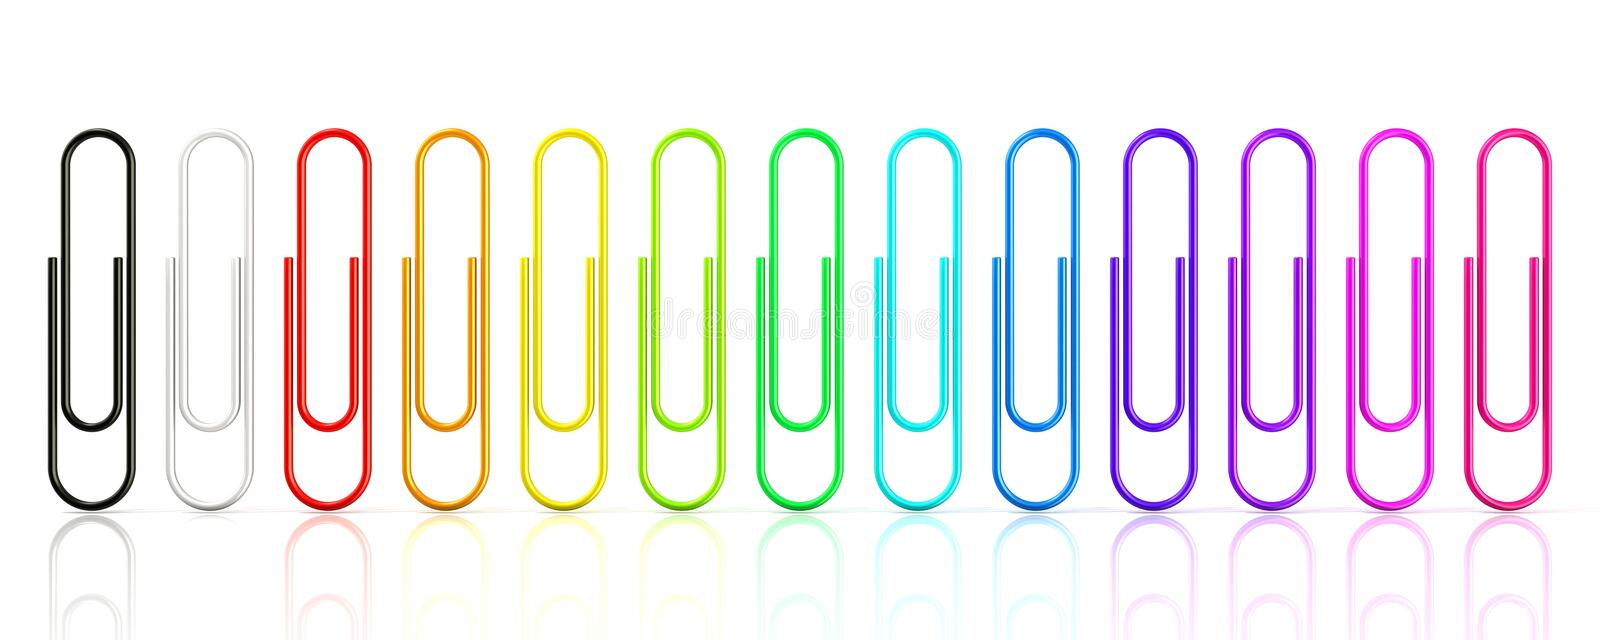 Colorful collection of paper clips isolated on white background vector illustration